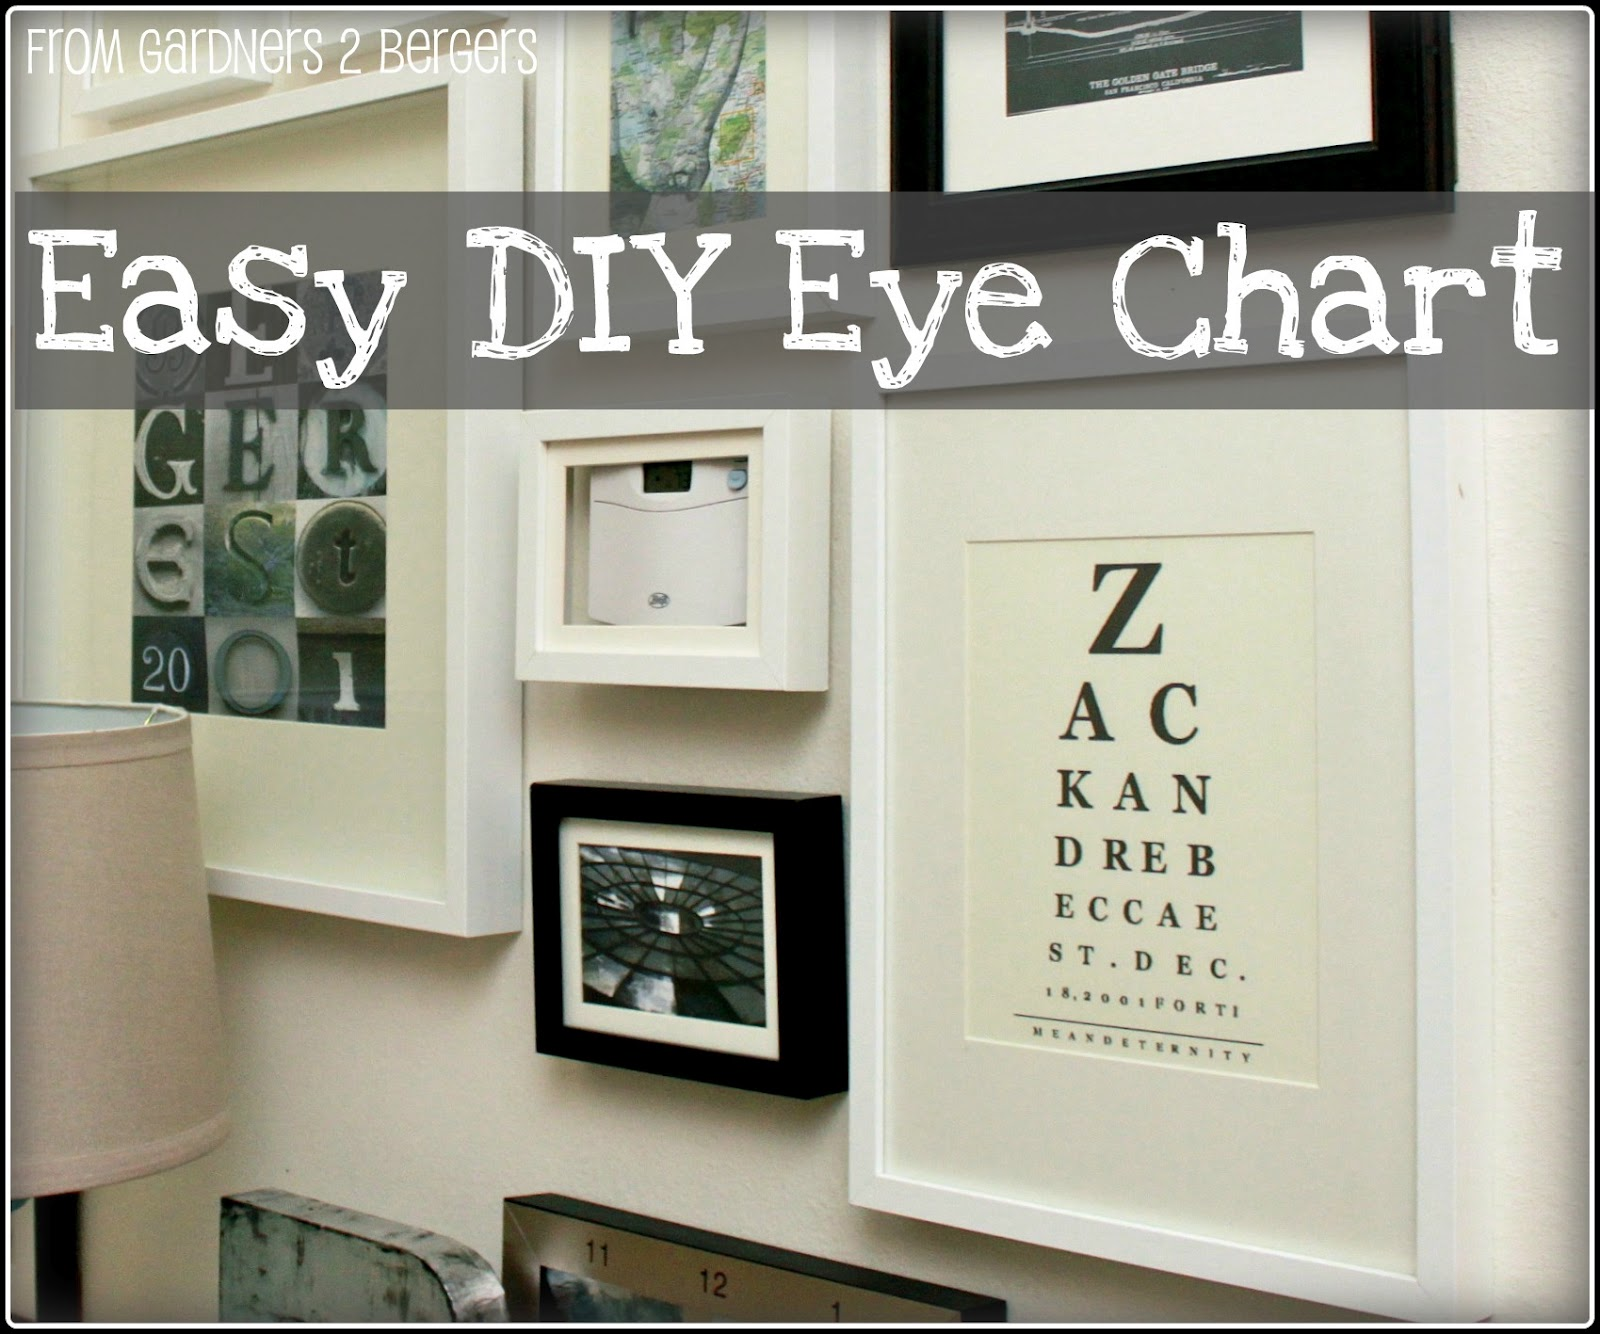 From gardners 2 bergers art easy diy eye chart art nvjuhfo Image collections